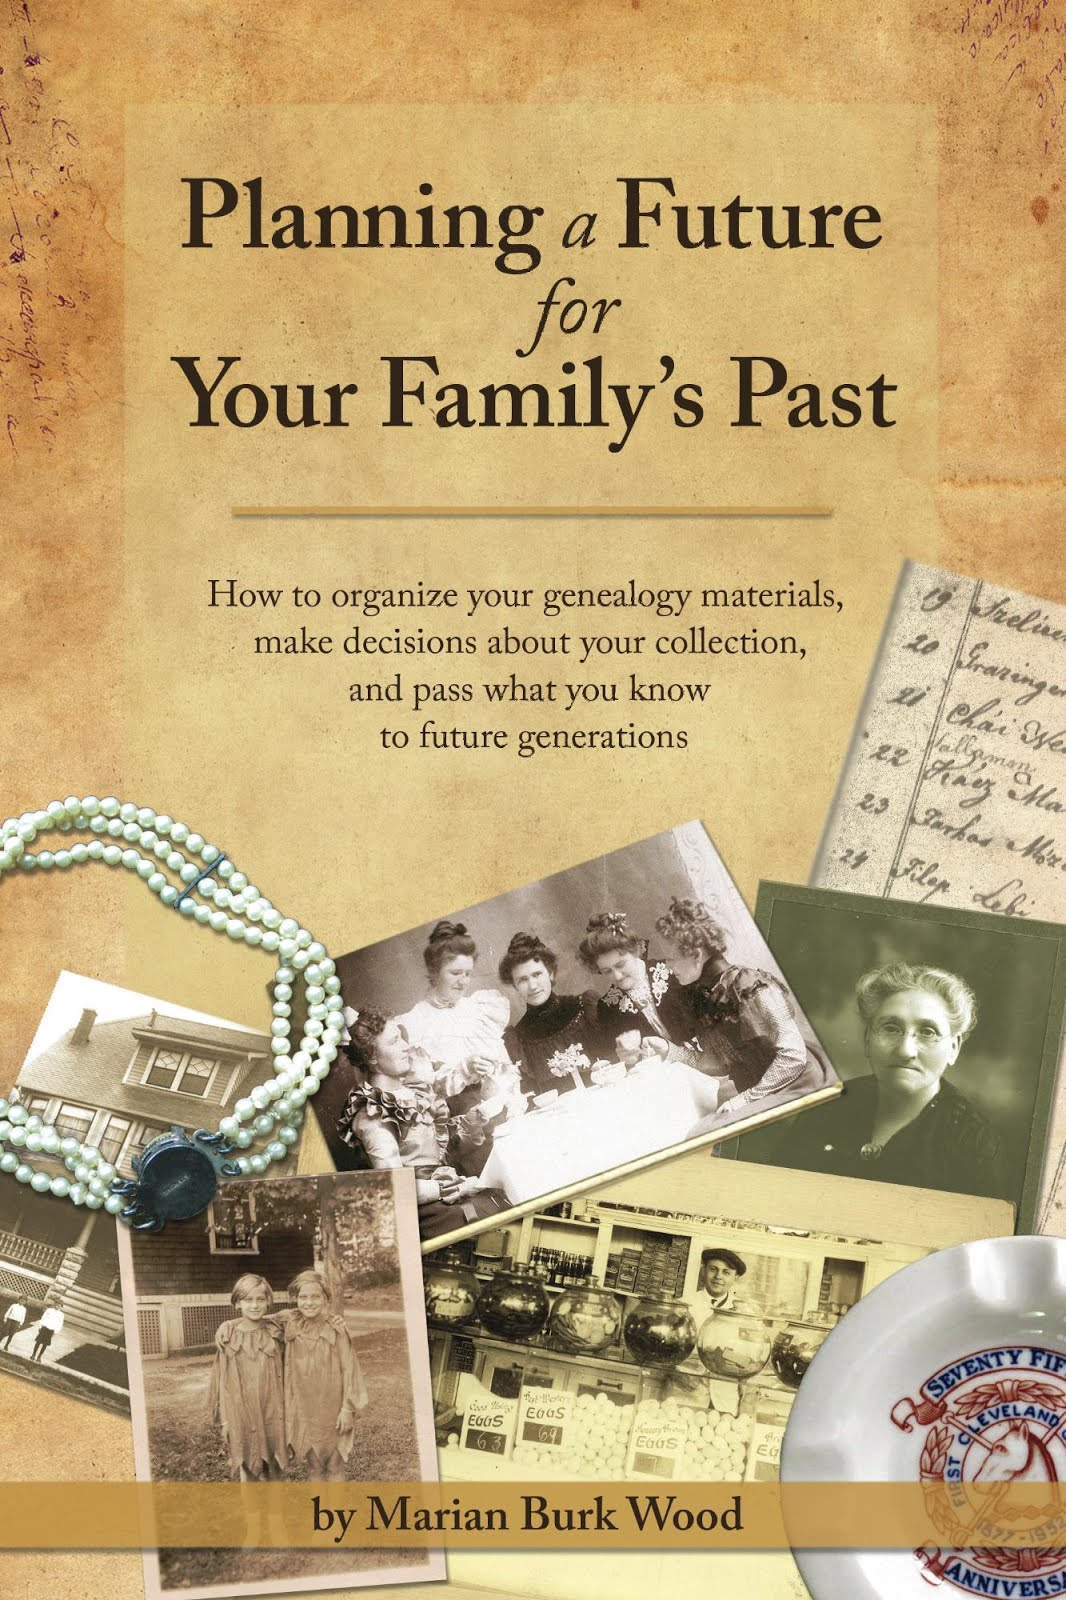 My best-selling genealogy book